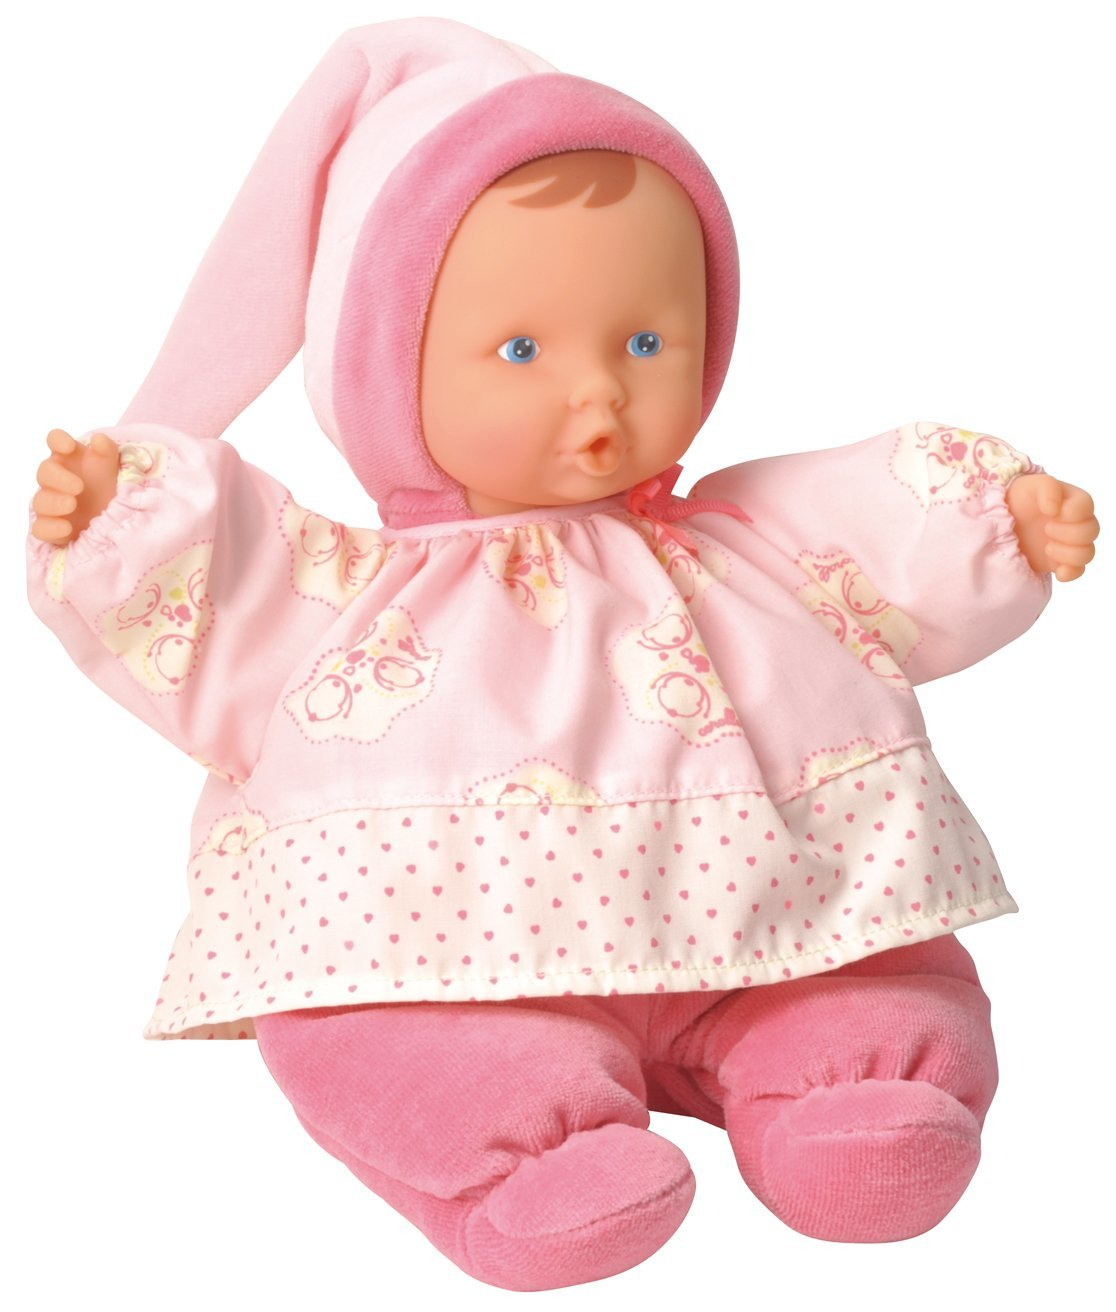 Babi Babipouce Pink Cotton Flower Doll, Soft, plush body that is easy to grasp and hold By Corolle by